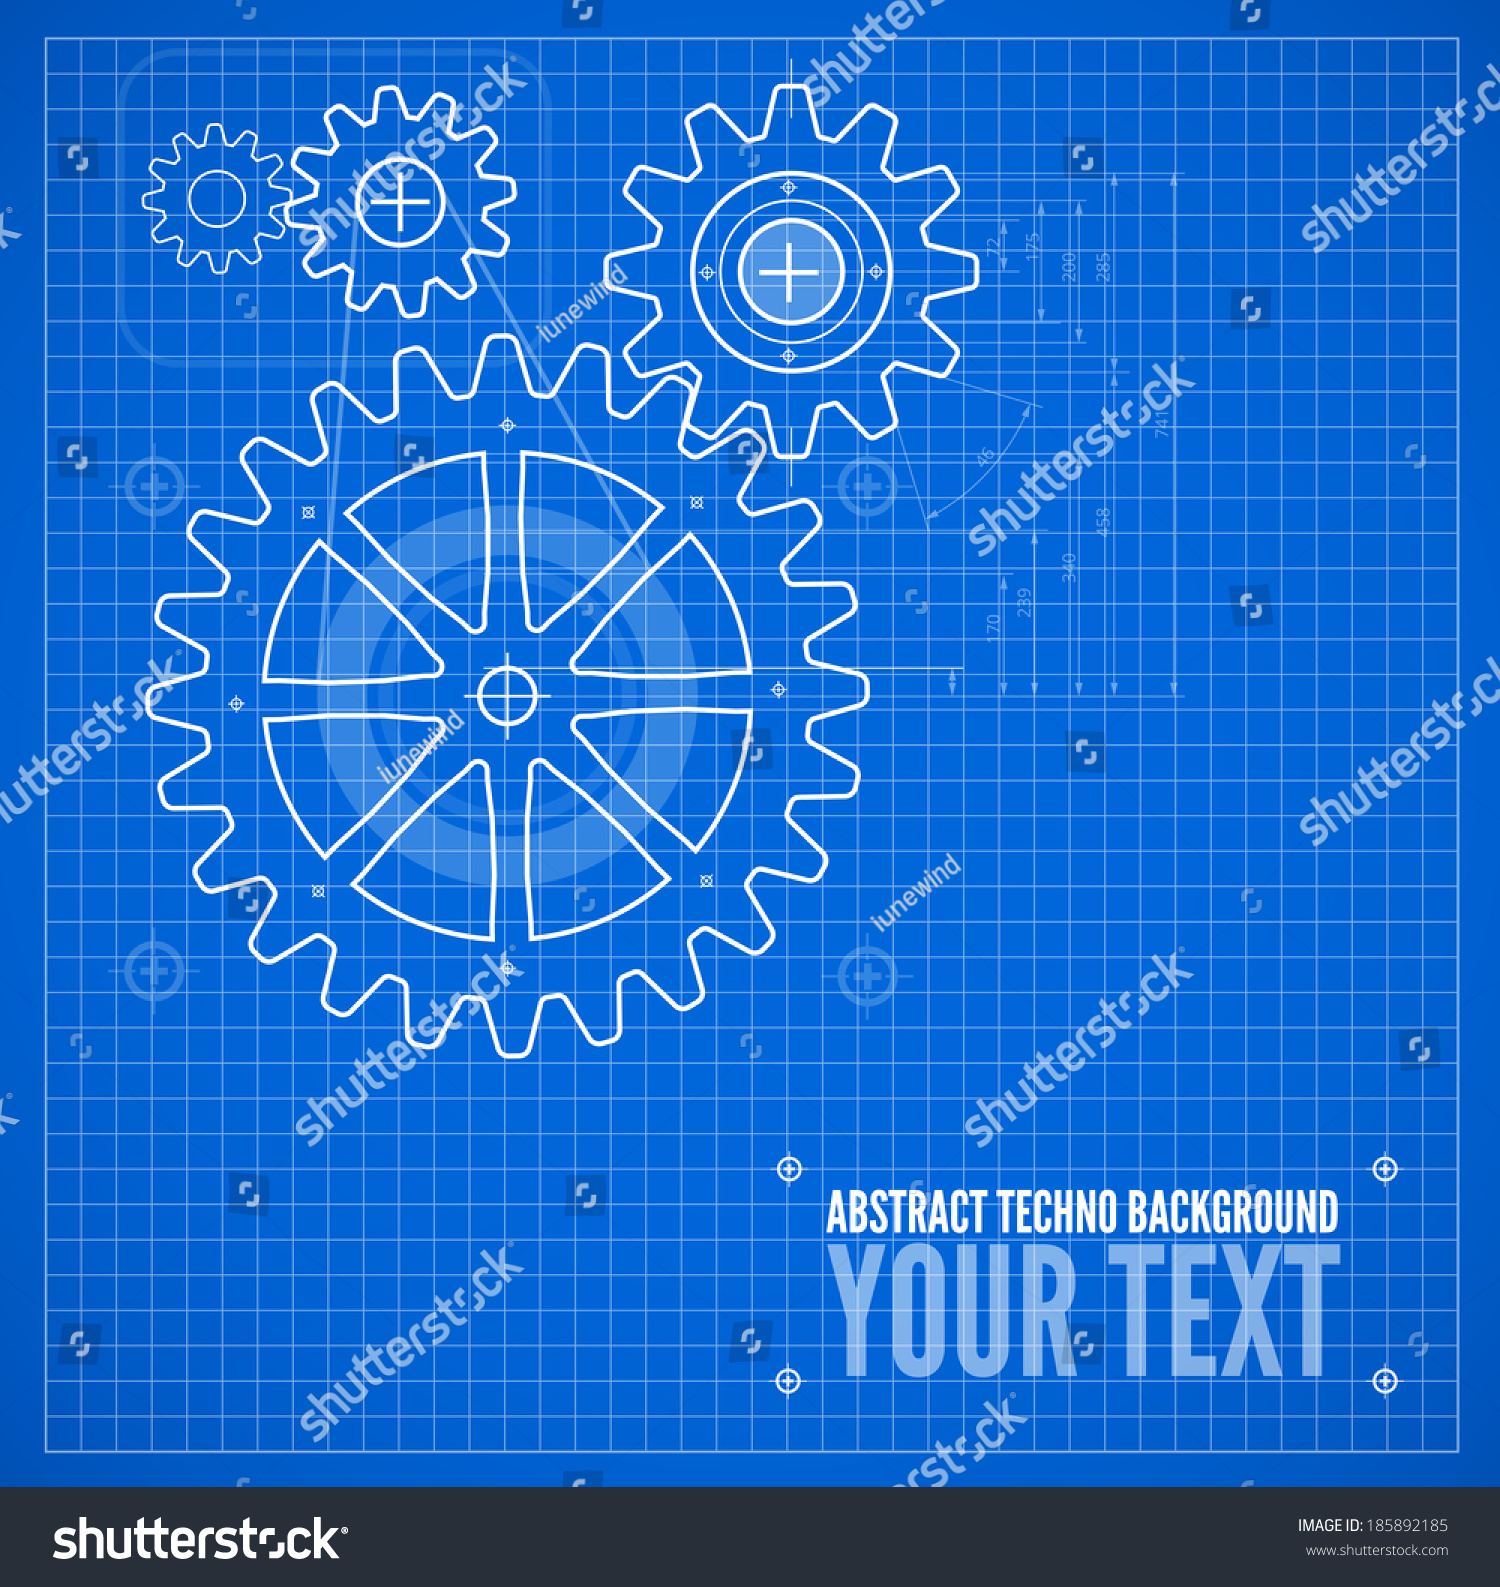 Technical blueprint template illustration on blue stock vector technical blueprint template illustration on blue vector background malvernweather Image collections